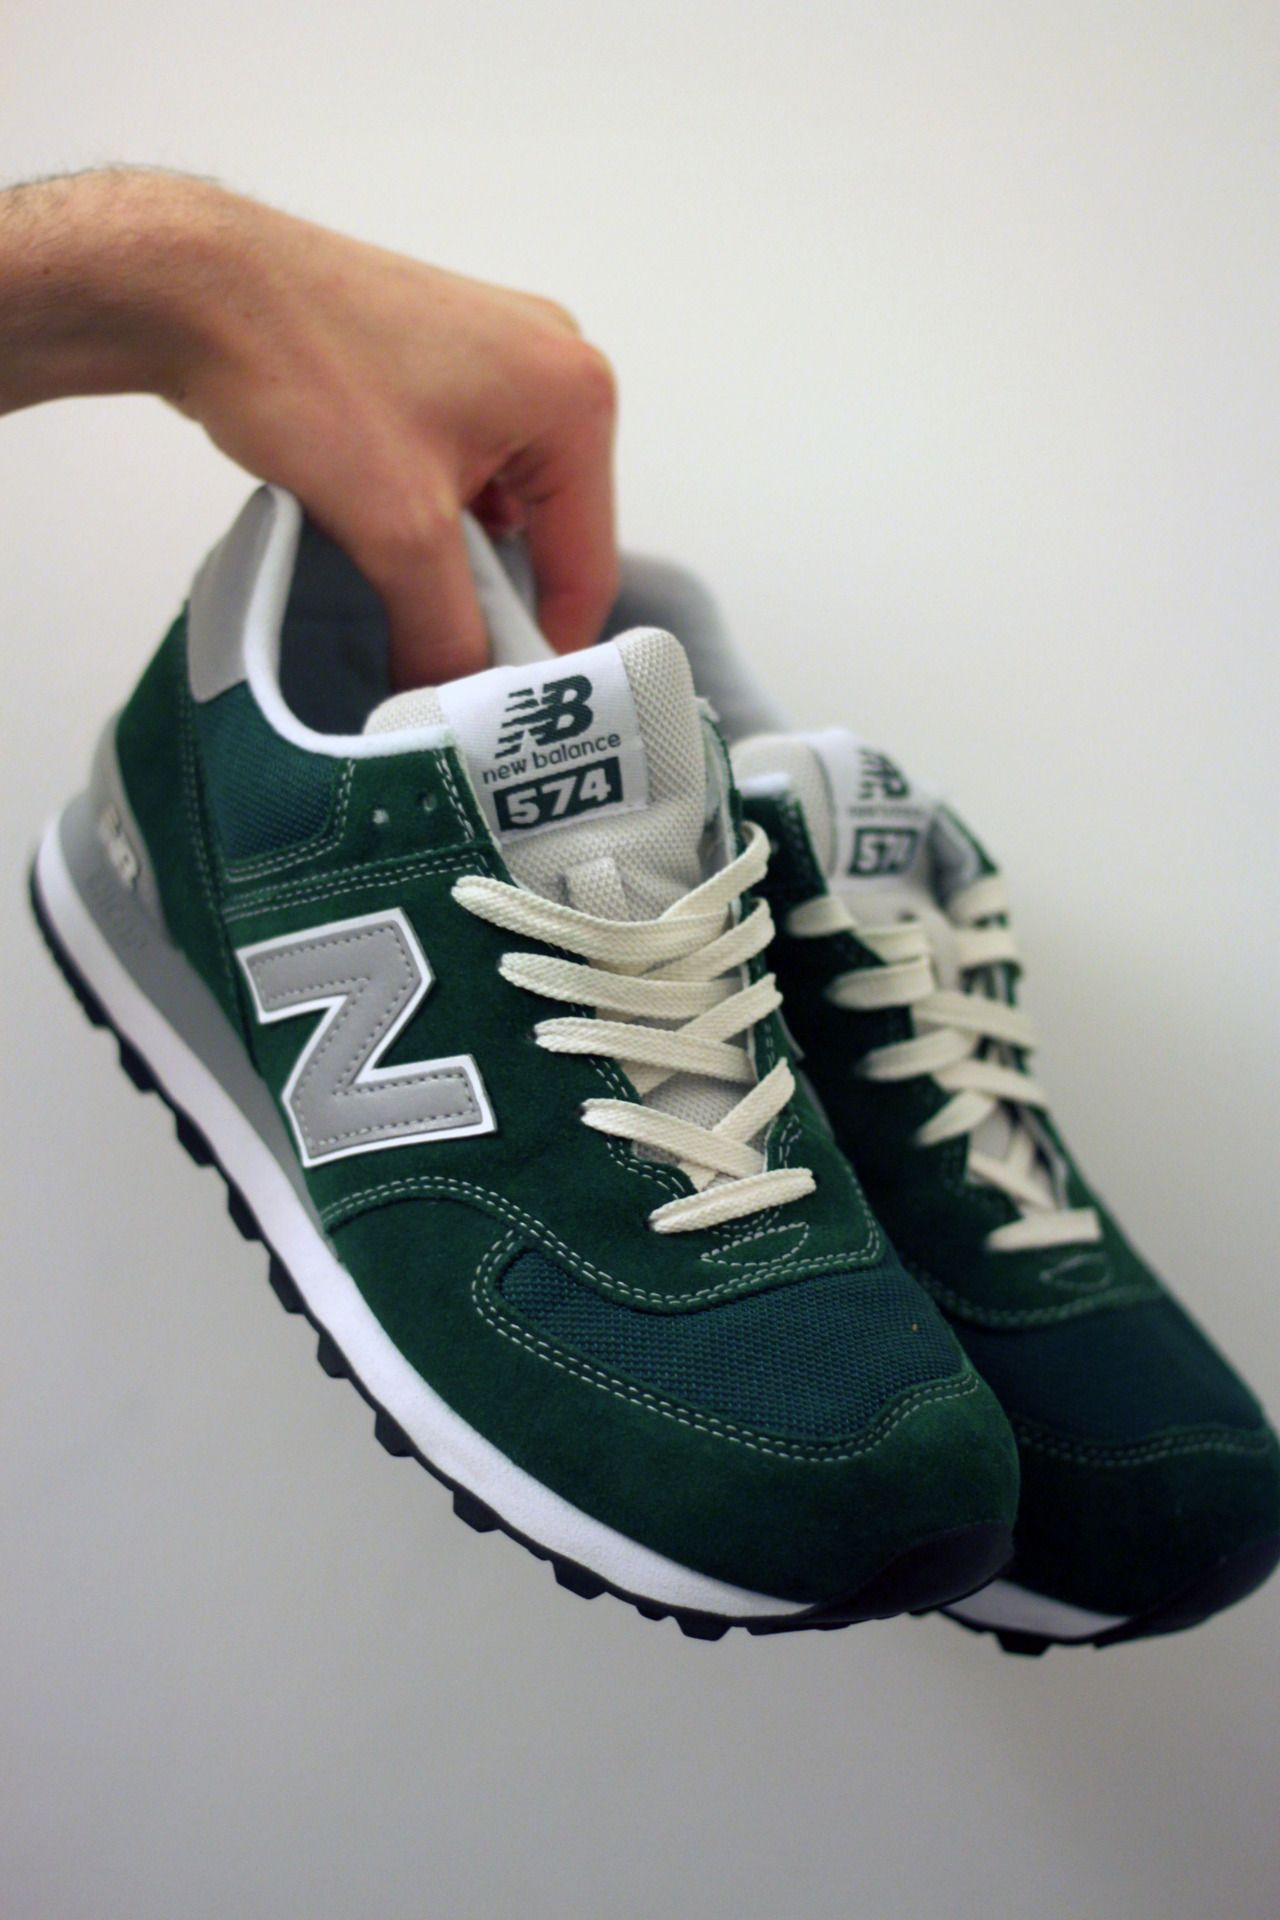 new  balance A favorite color of the 574   Effortlessly cool   Shoes ... a793a4919f55